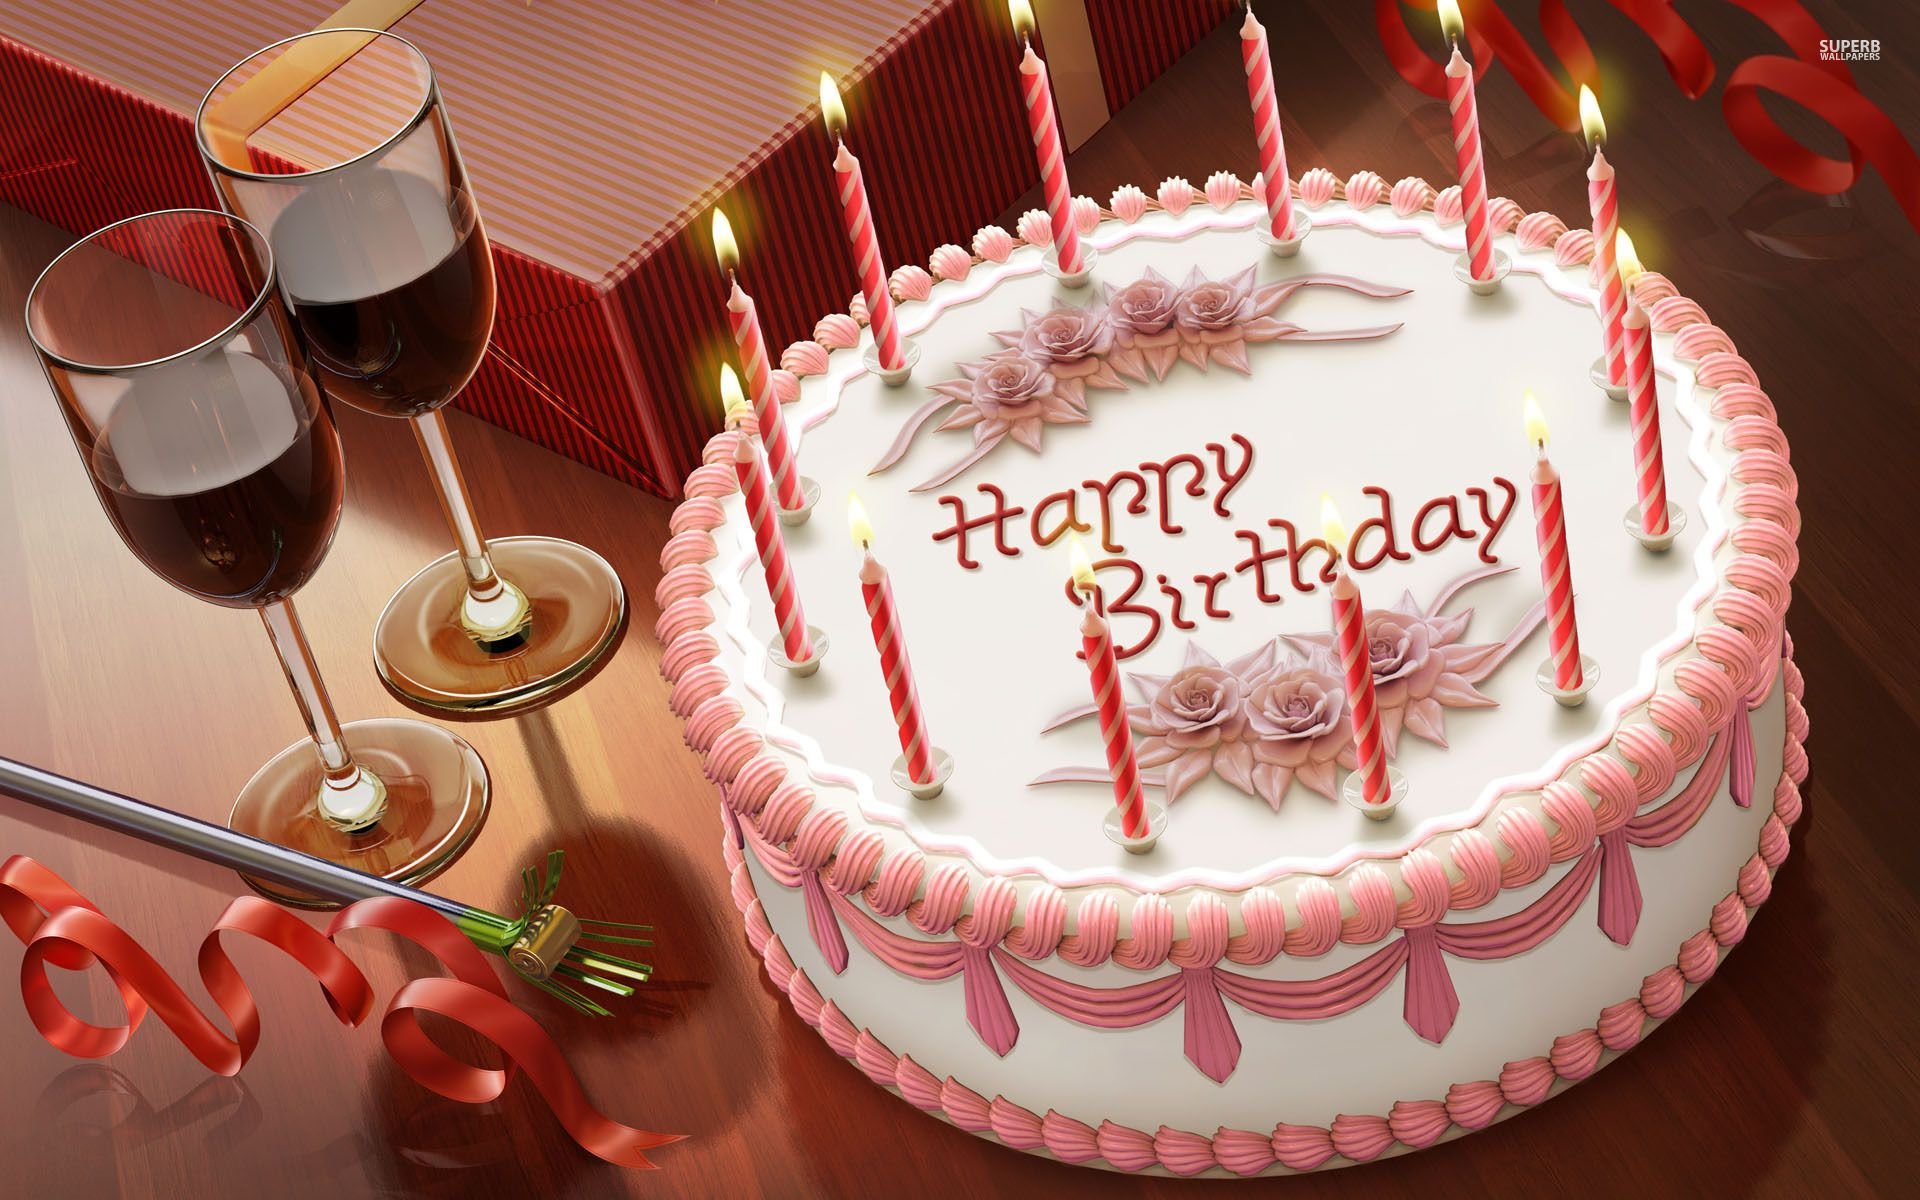 Just Follow The Wide Collection Of Birthday Cake Wallpaper Images